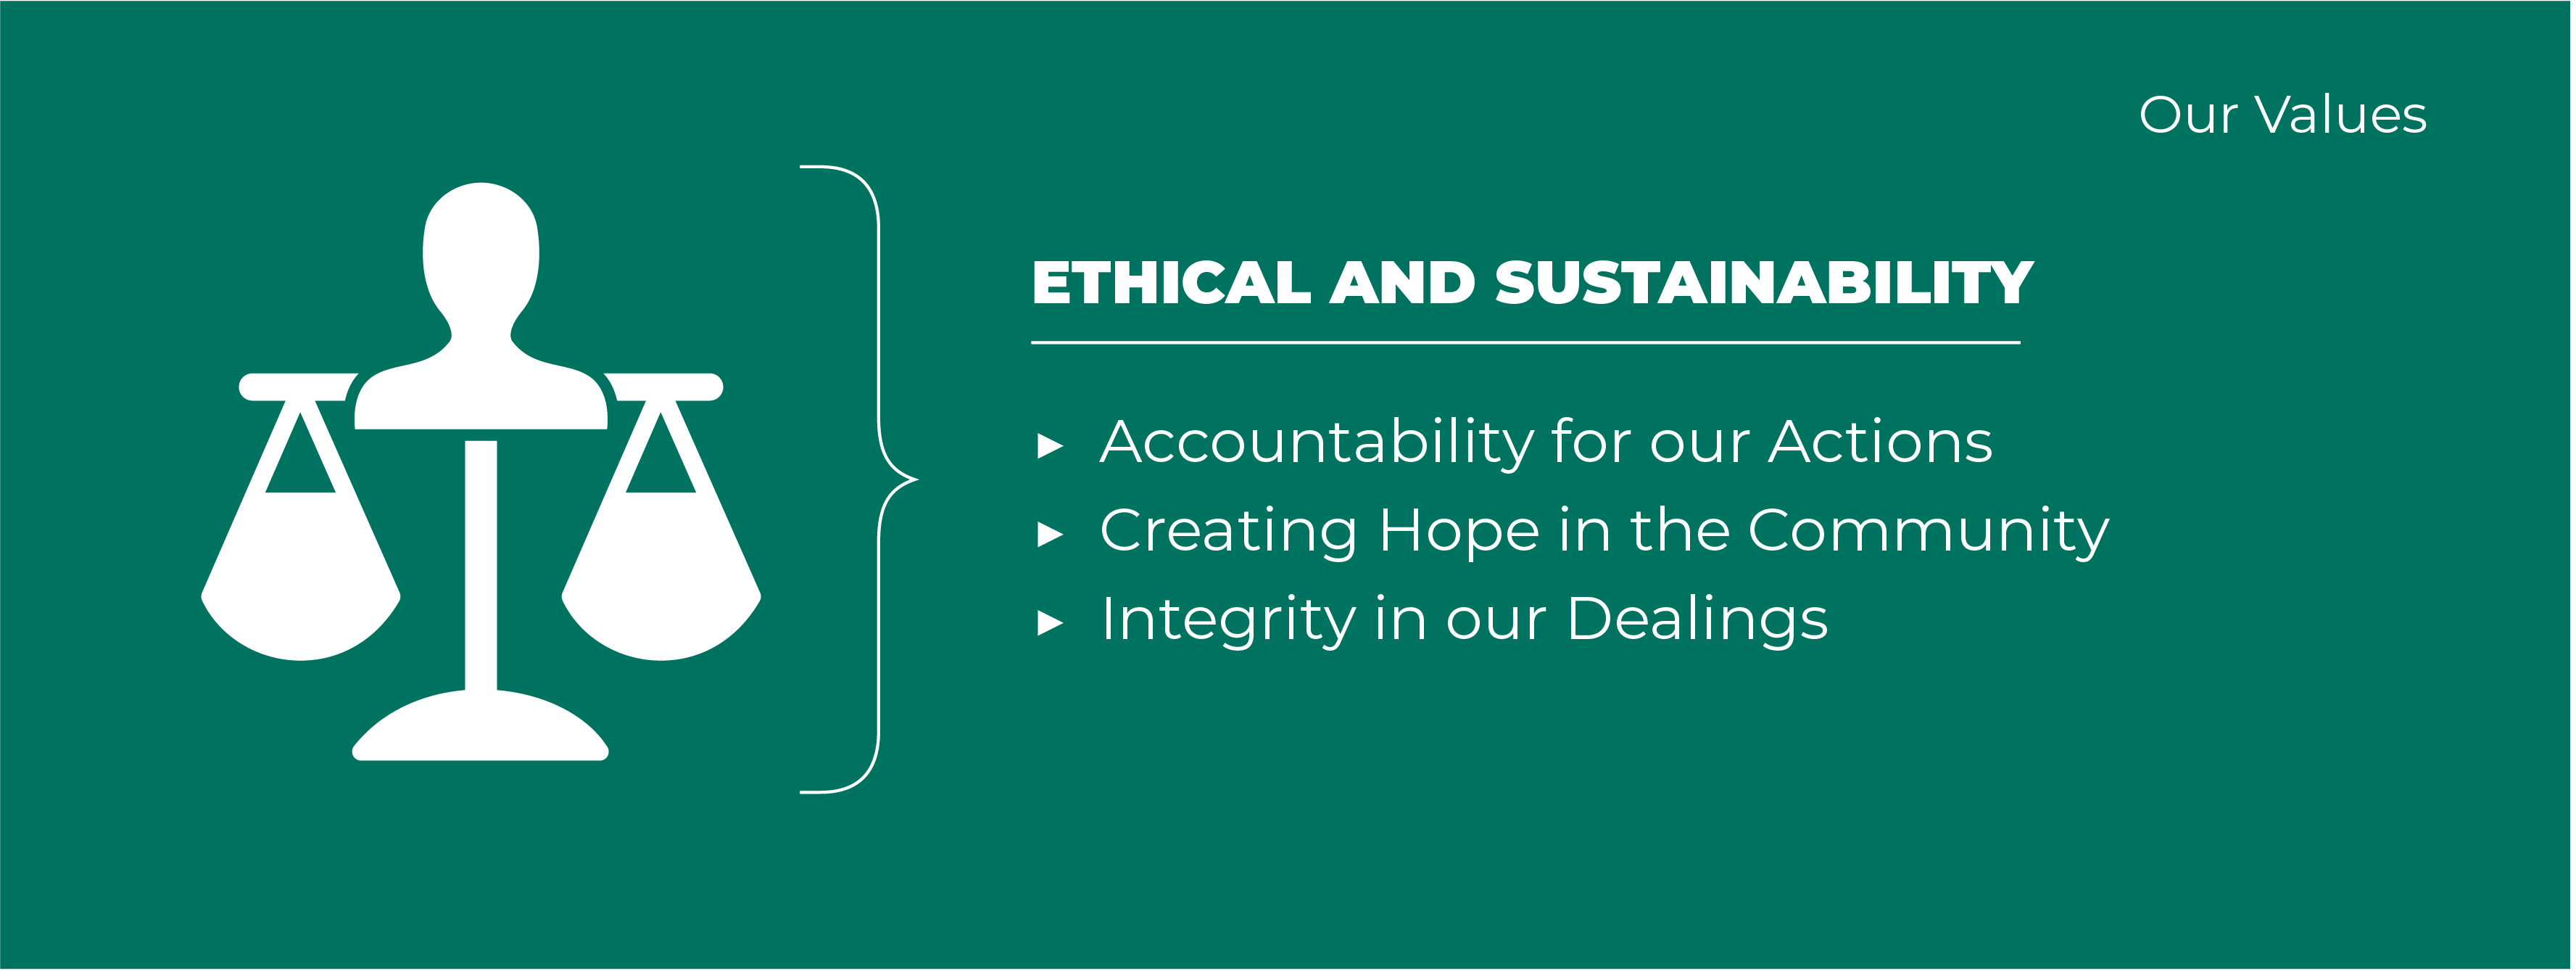 Ethical & Sustainable